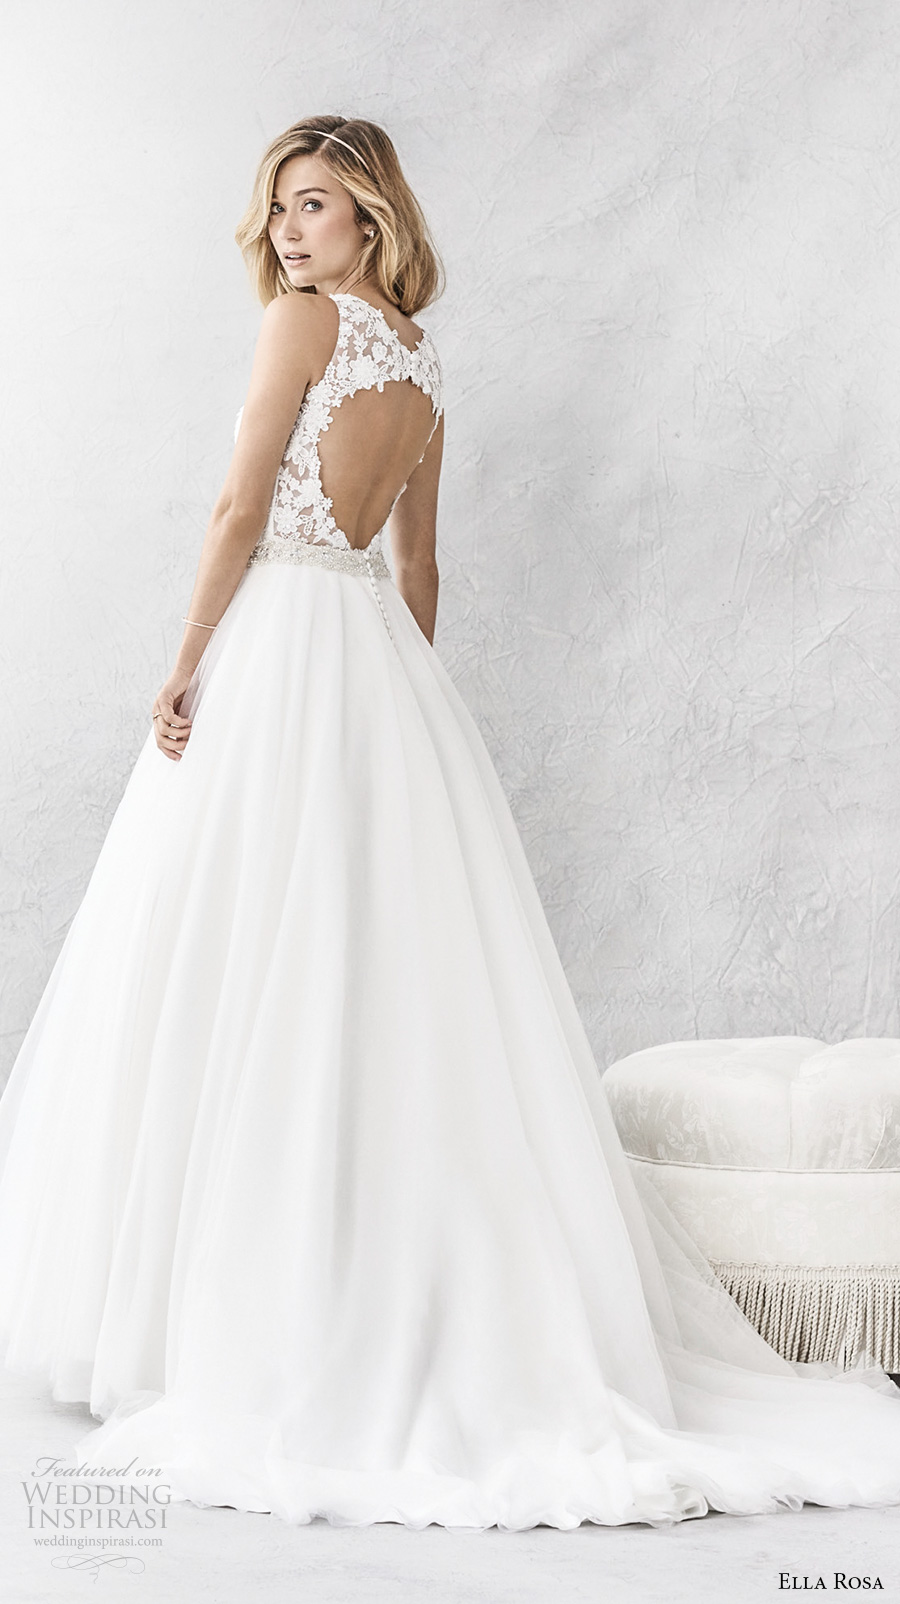 ella rosa spring 2017 bridal sleeveless illusion bateau sweetheart neckline heavily embellished bodice romantic a  line wedding dress keyhole back chapel train (387) bv